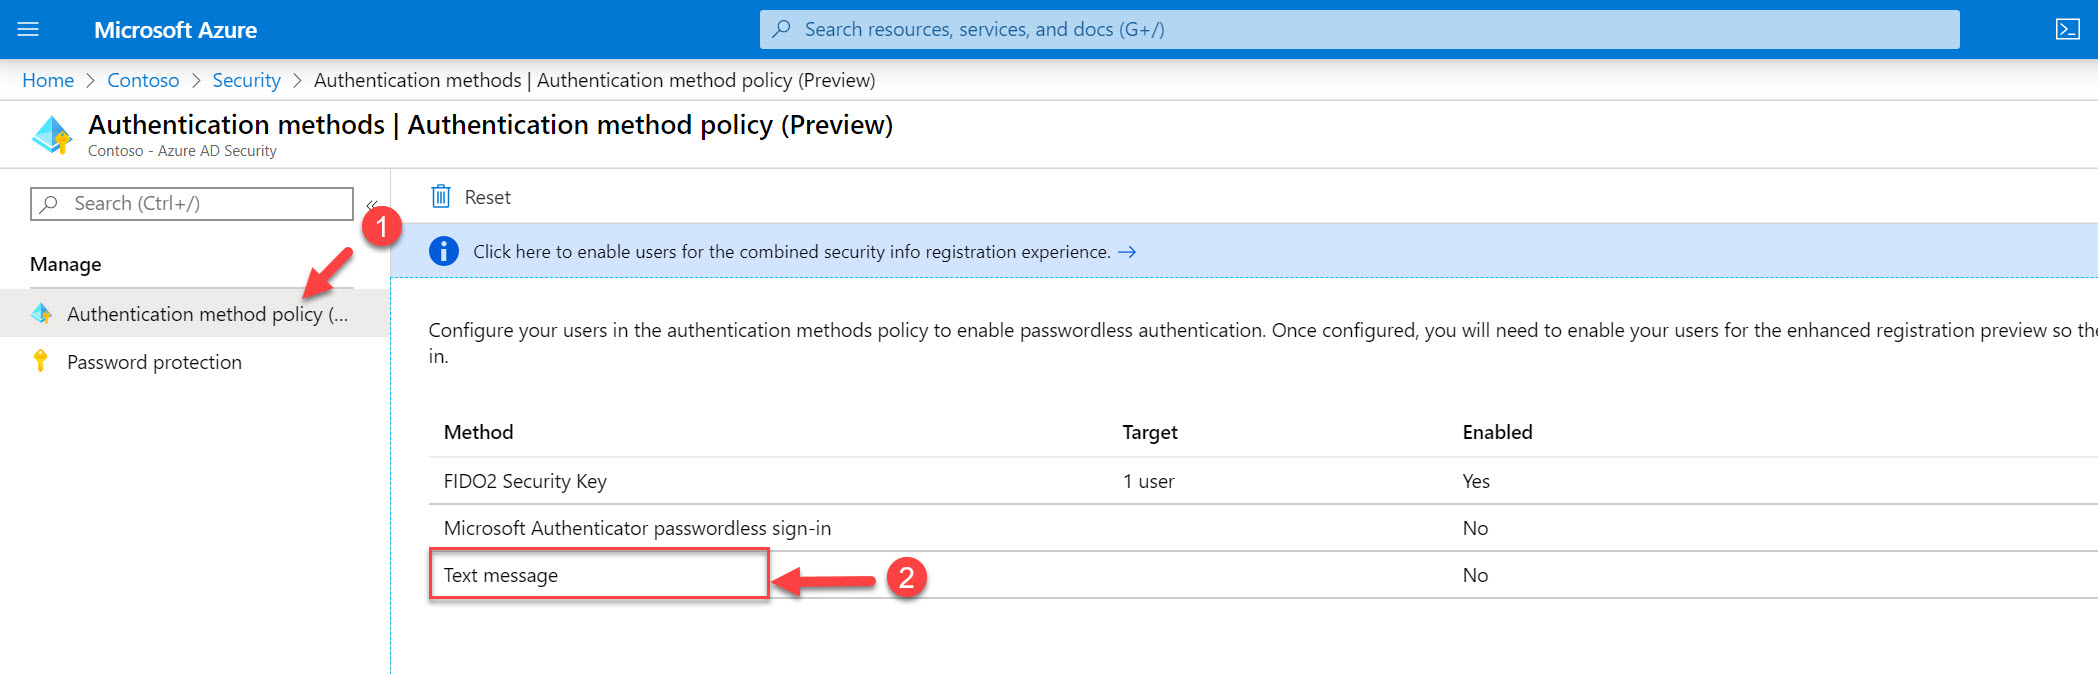 Authentication method policy text message settings